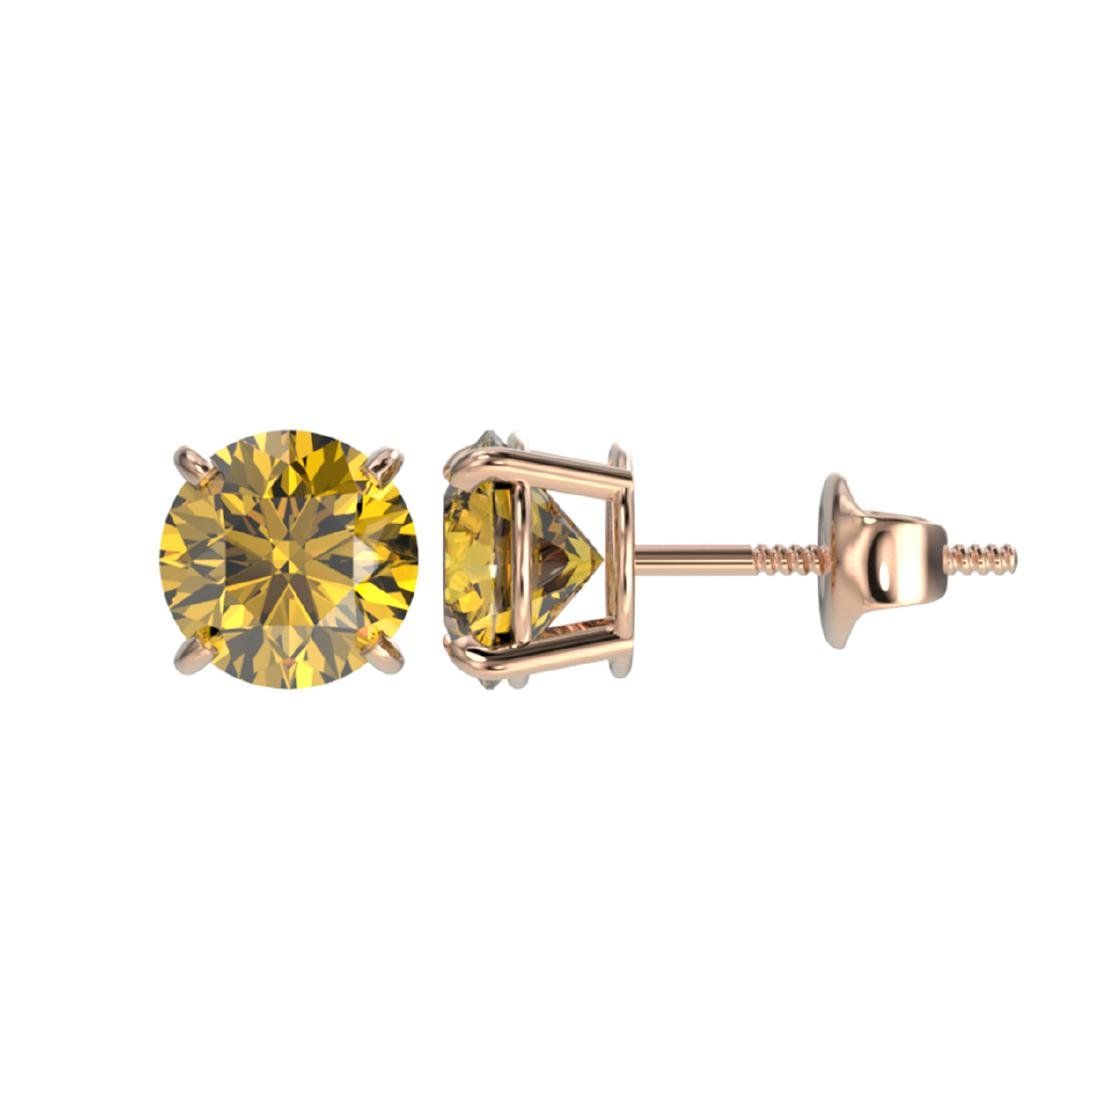 1.54 ctw Intense Yellow Diamond Stud Earrings 10K Rose - 2